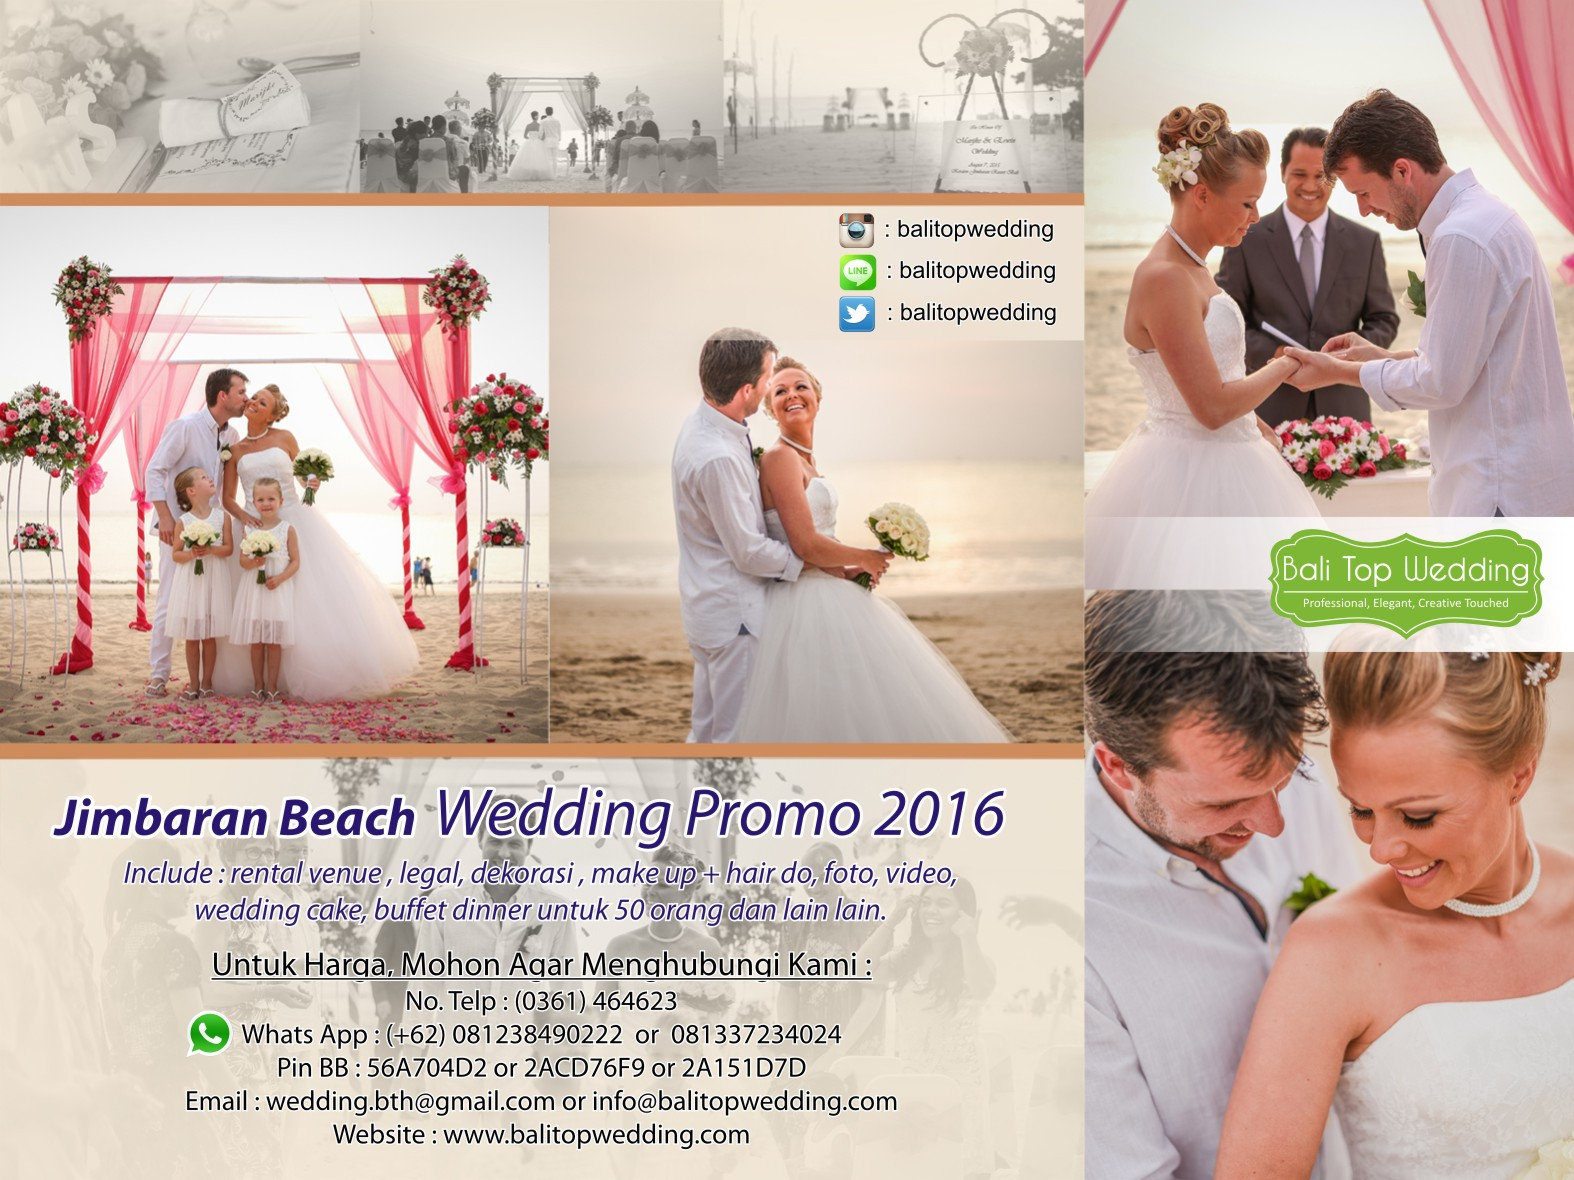 Promo wedding jimbaran